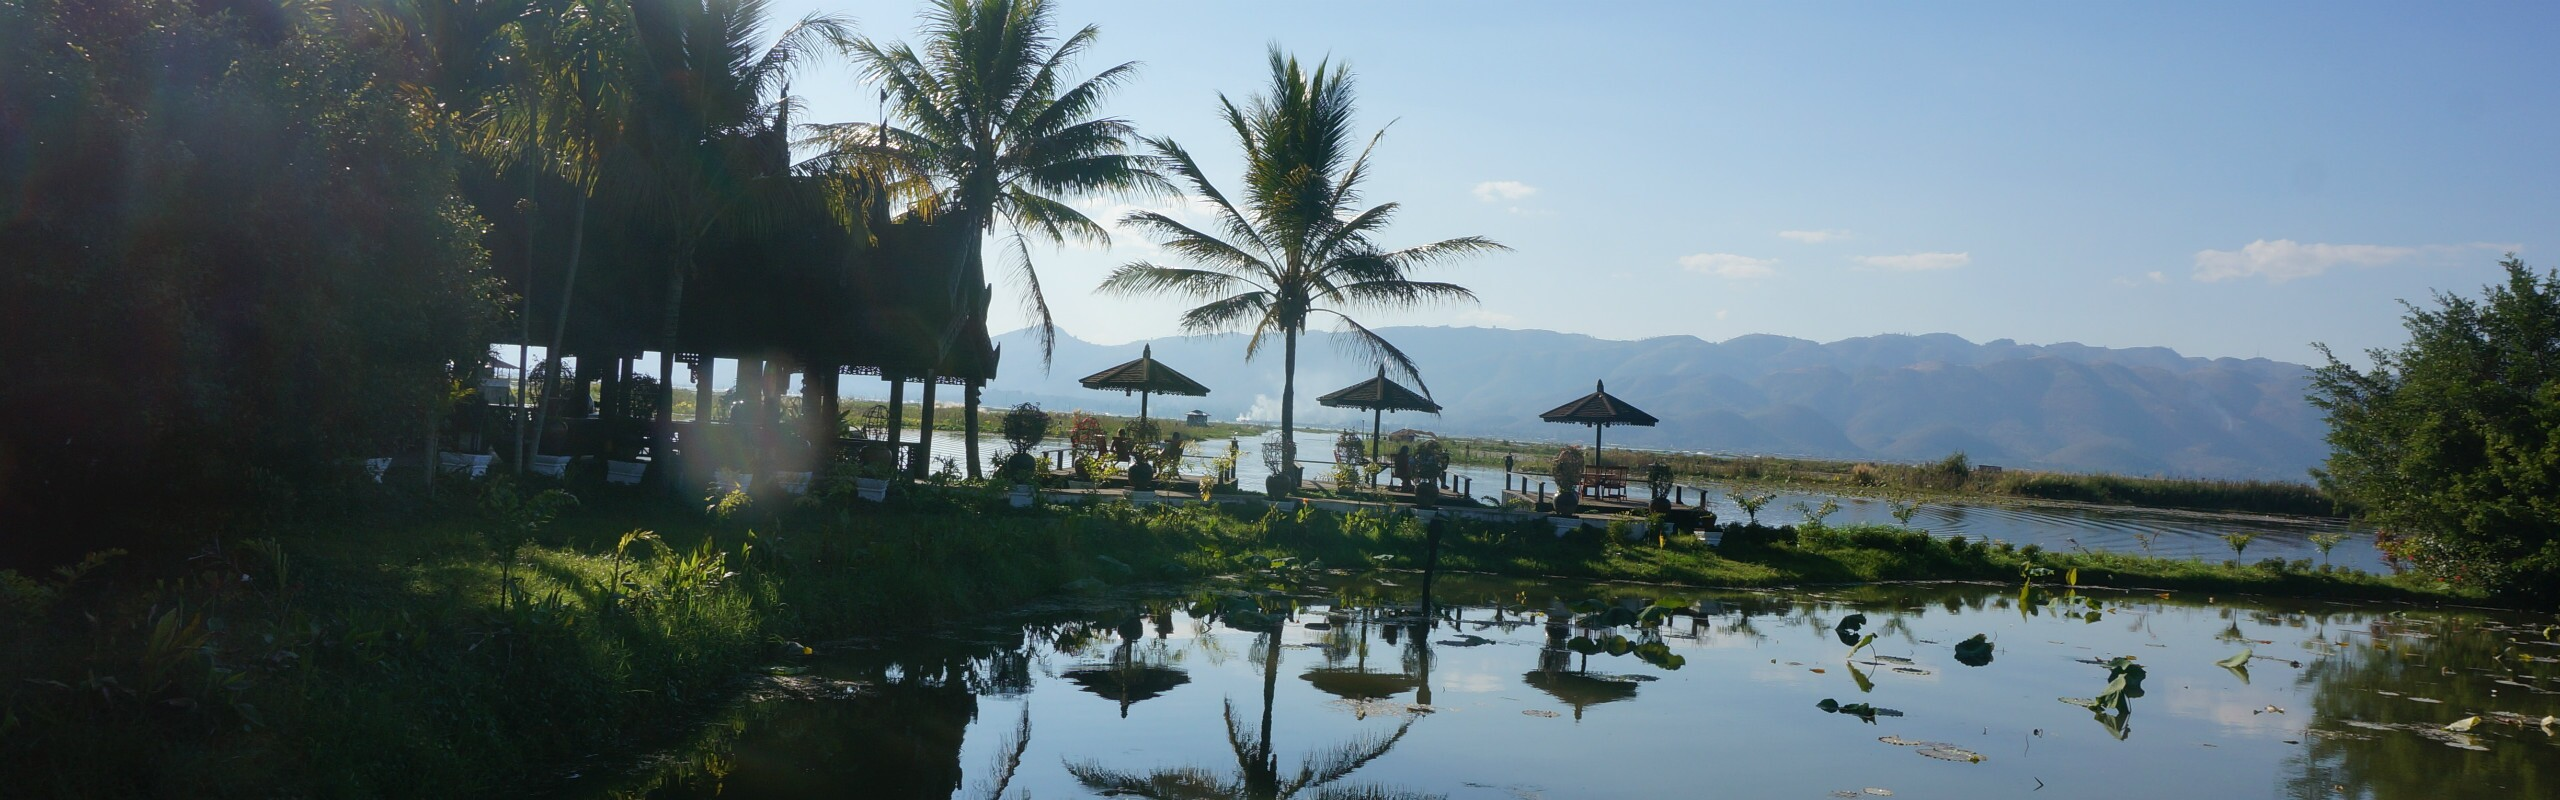 March Weather at Inle Lake